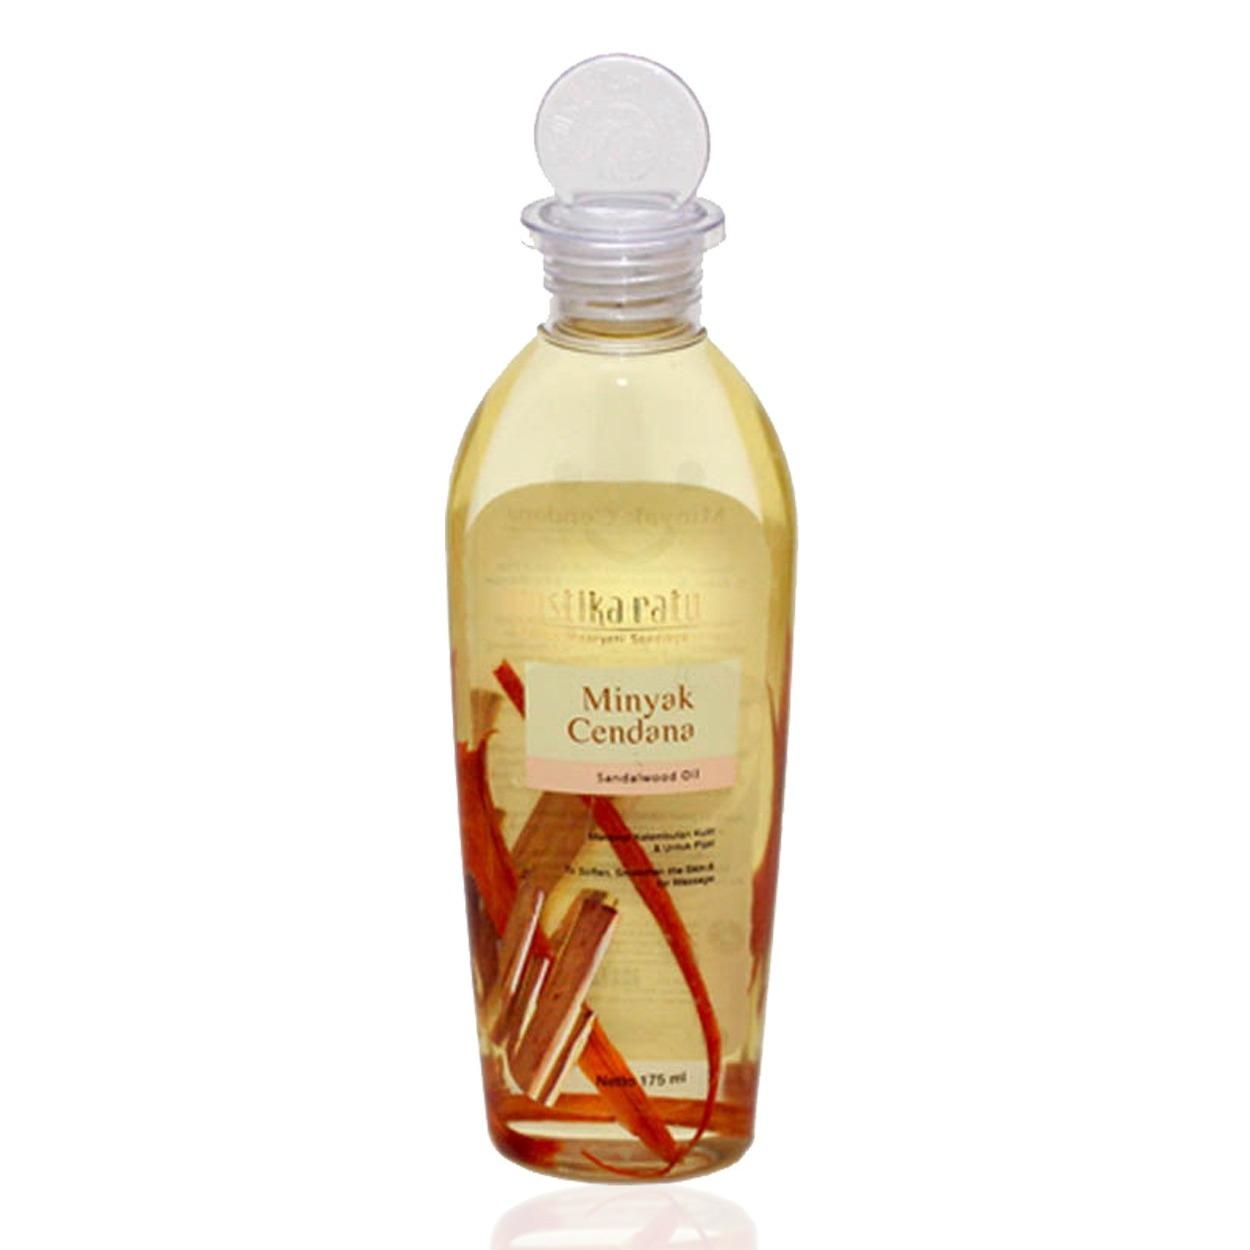 mustika ratu Minyak Cendana-Smoothen the skin & for Massage 175ml